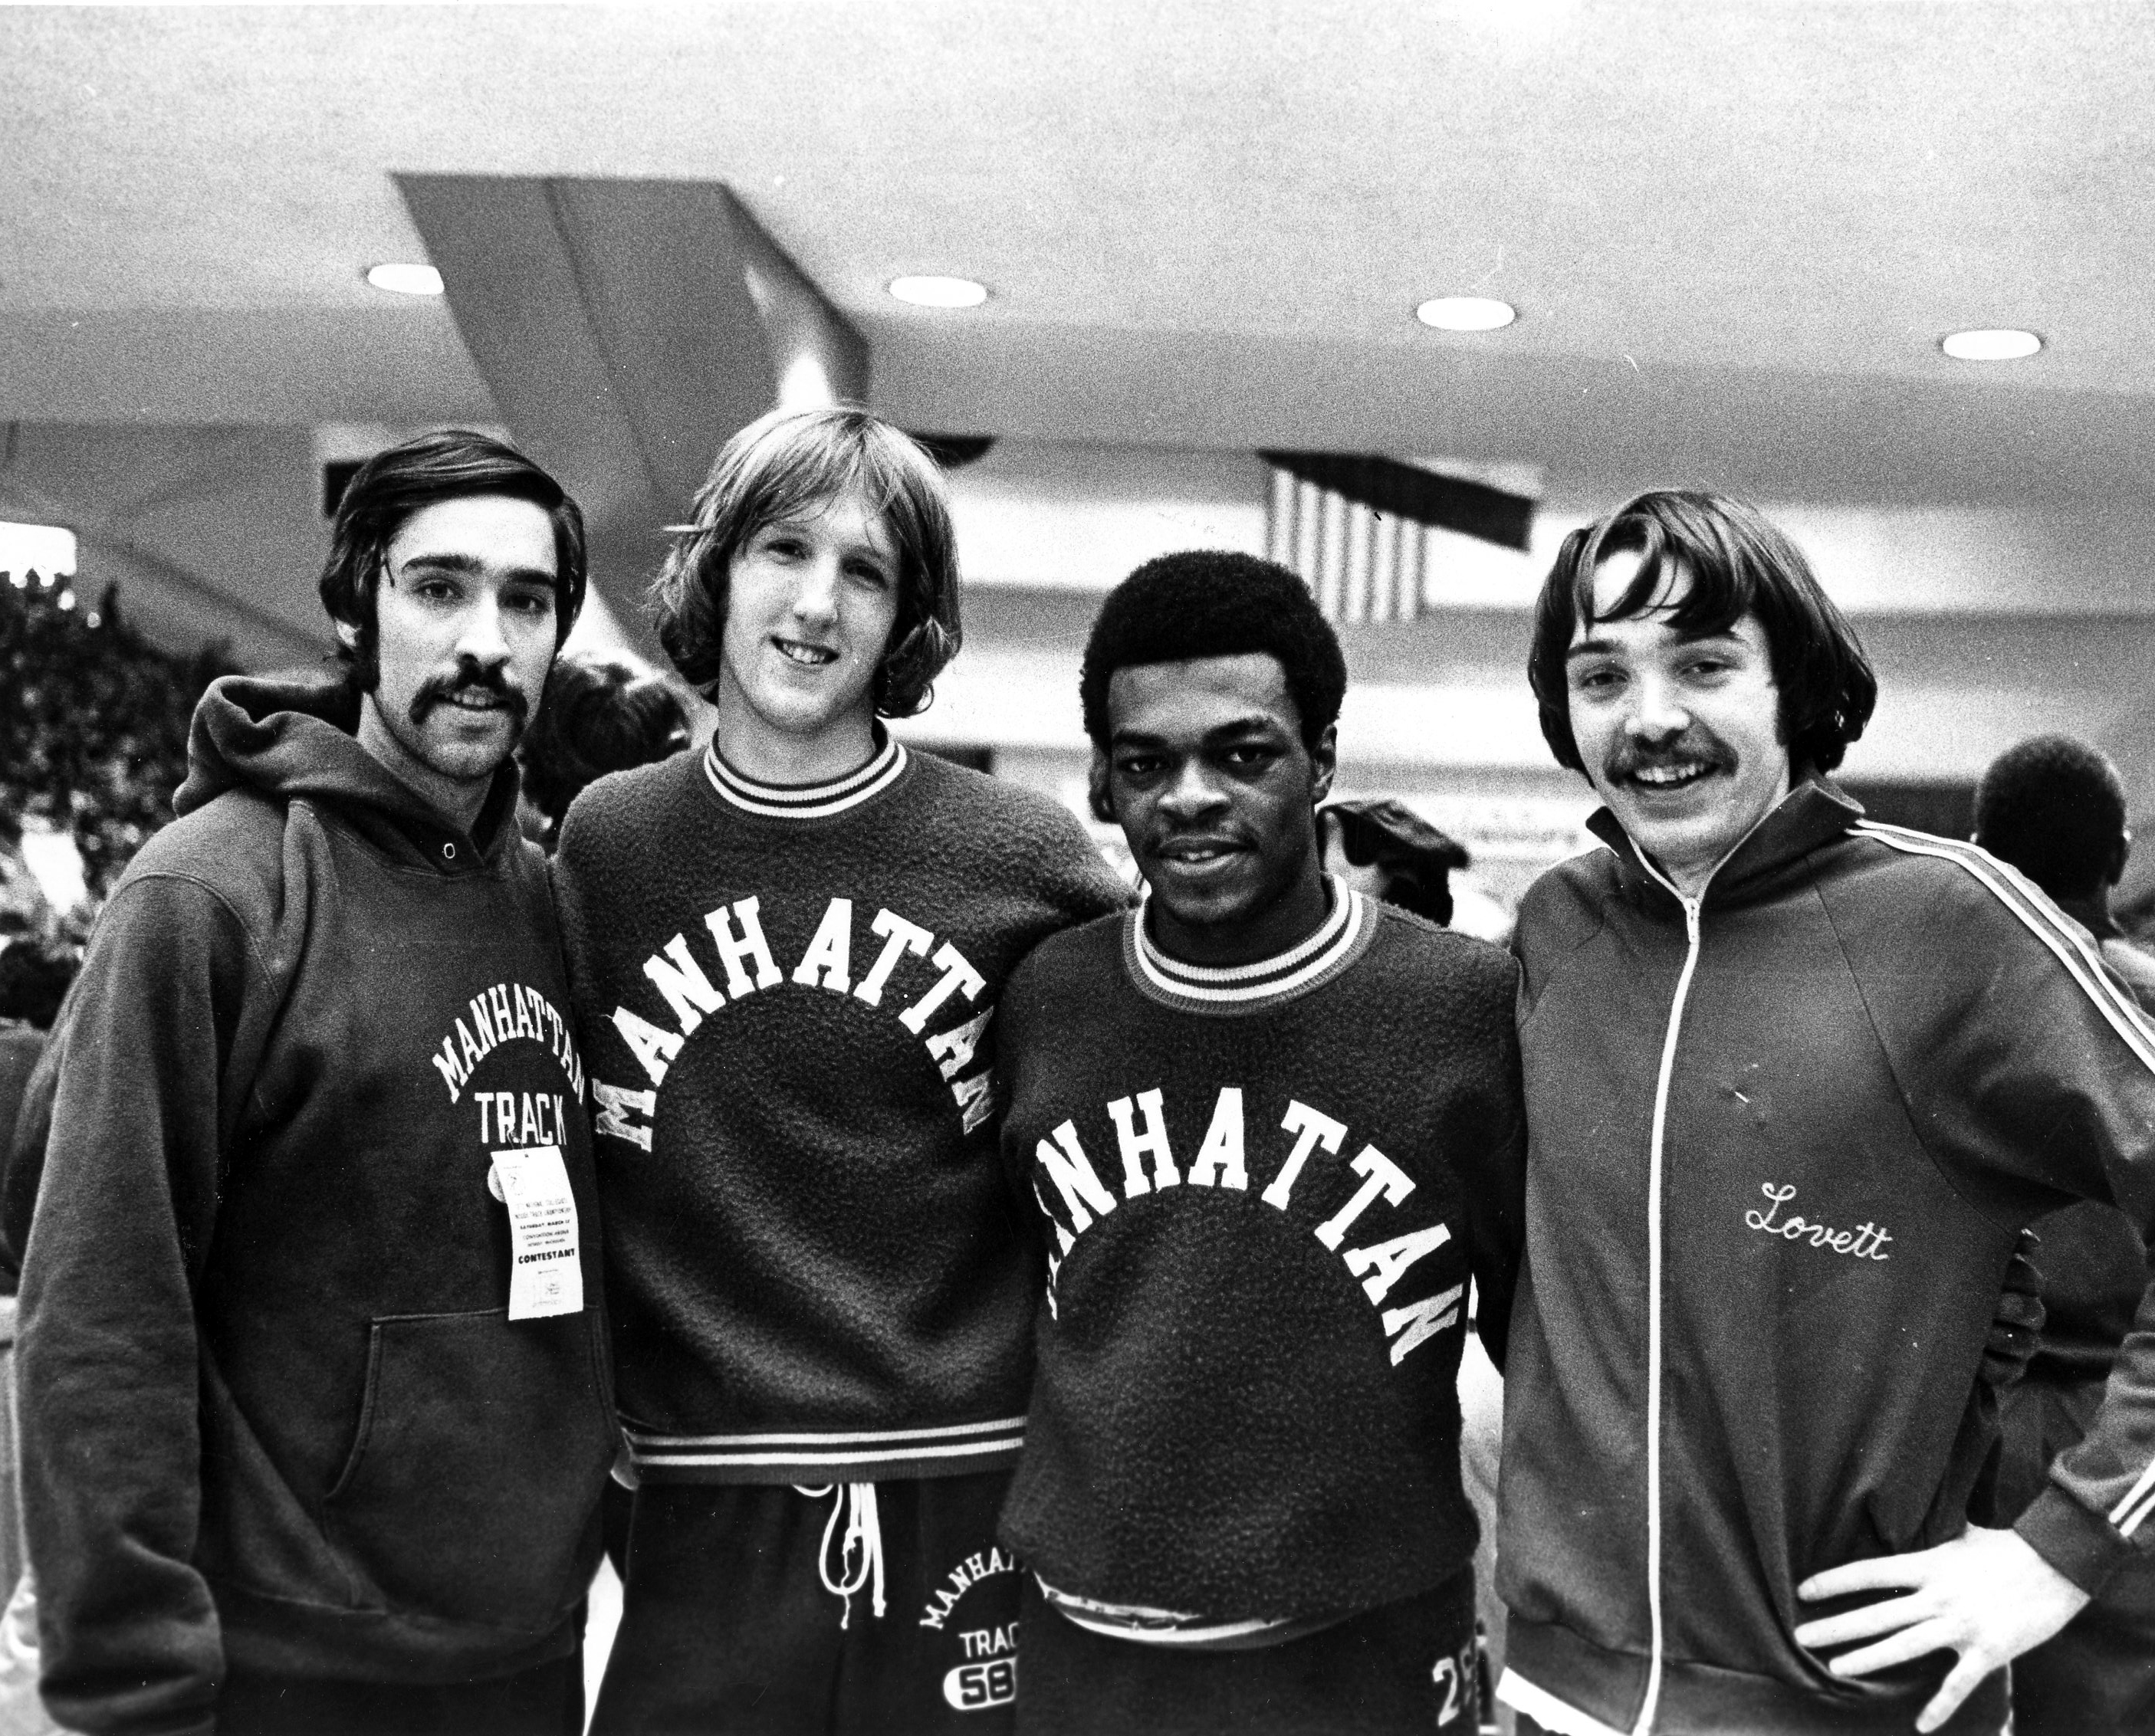 1973 NCAA indoor track and field championship relay team